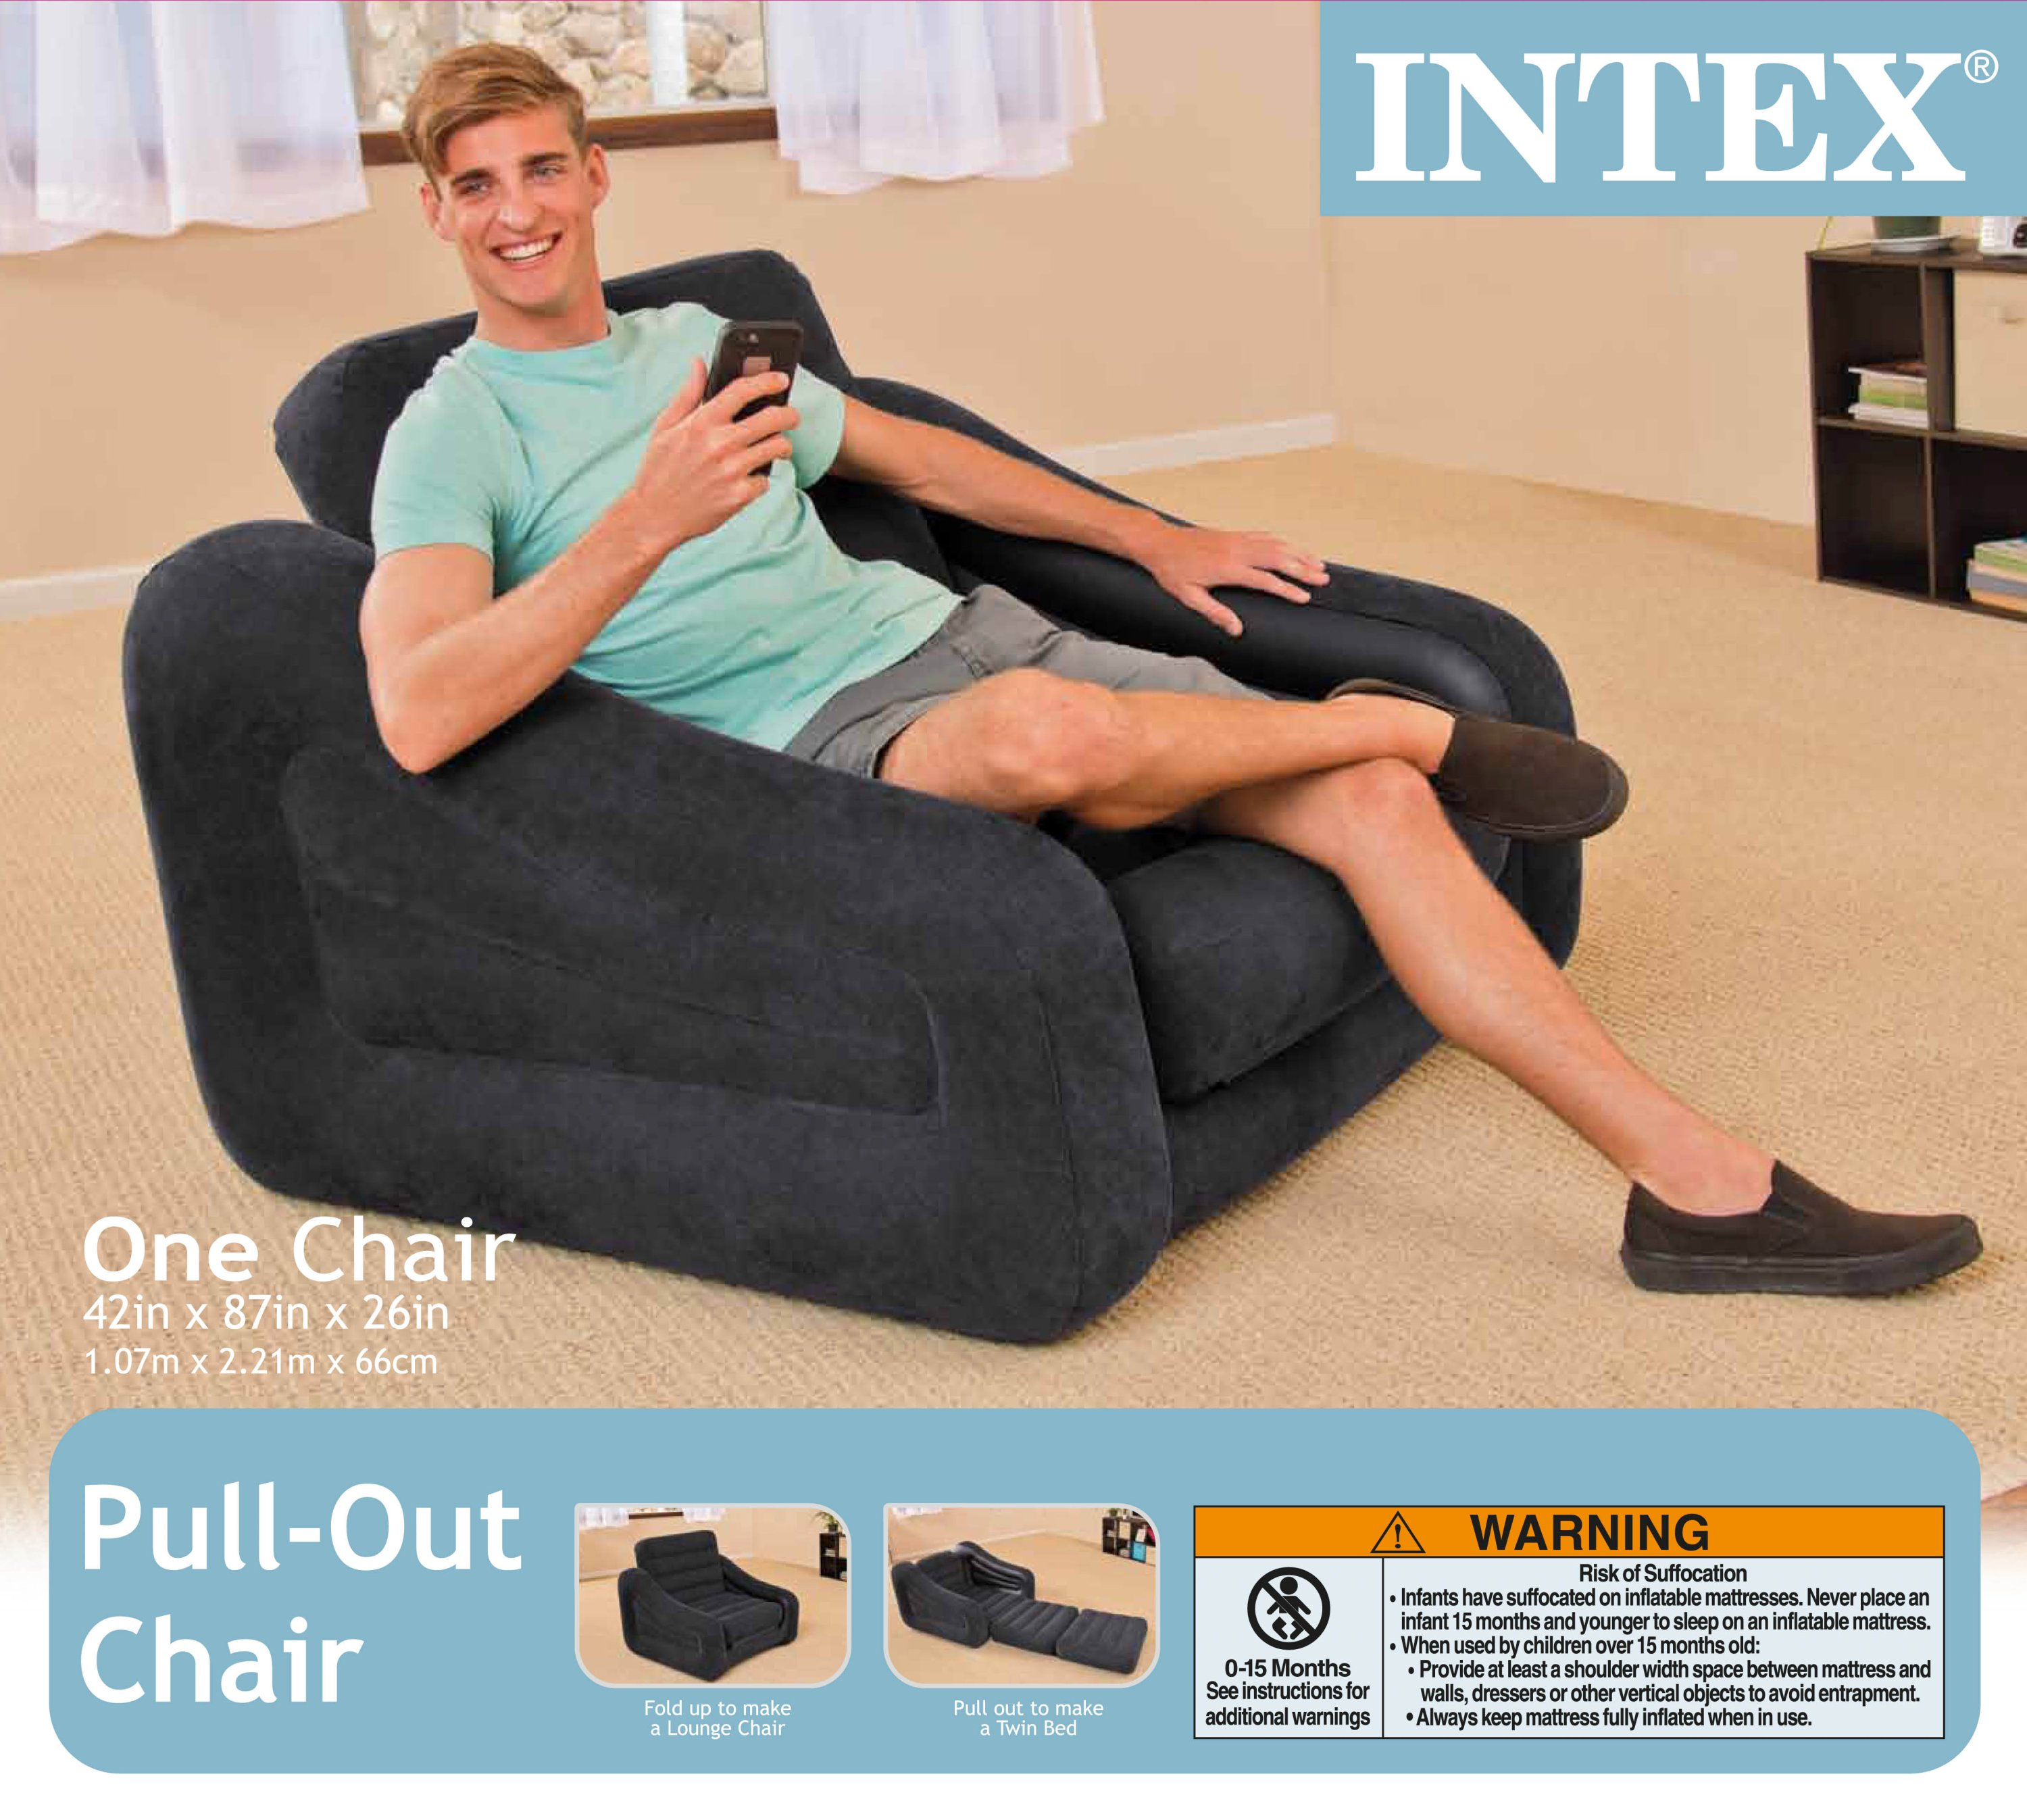 intex inflatable lounge chair. Intex Inflatable Air Chair With Pull Out Twin Bed Mattress Sleeper 68565E Black Lounge L